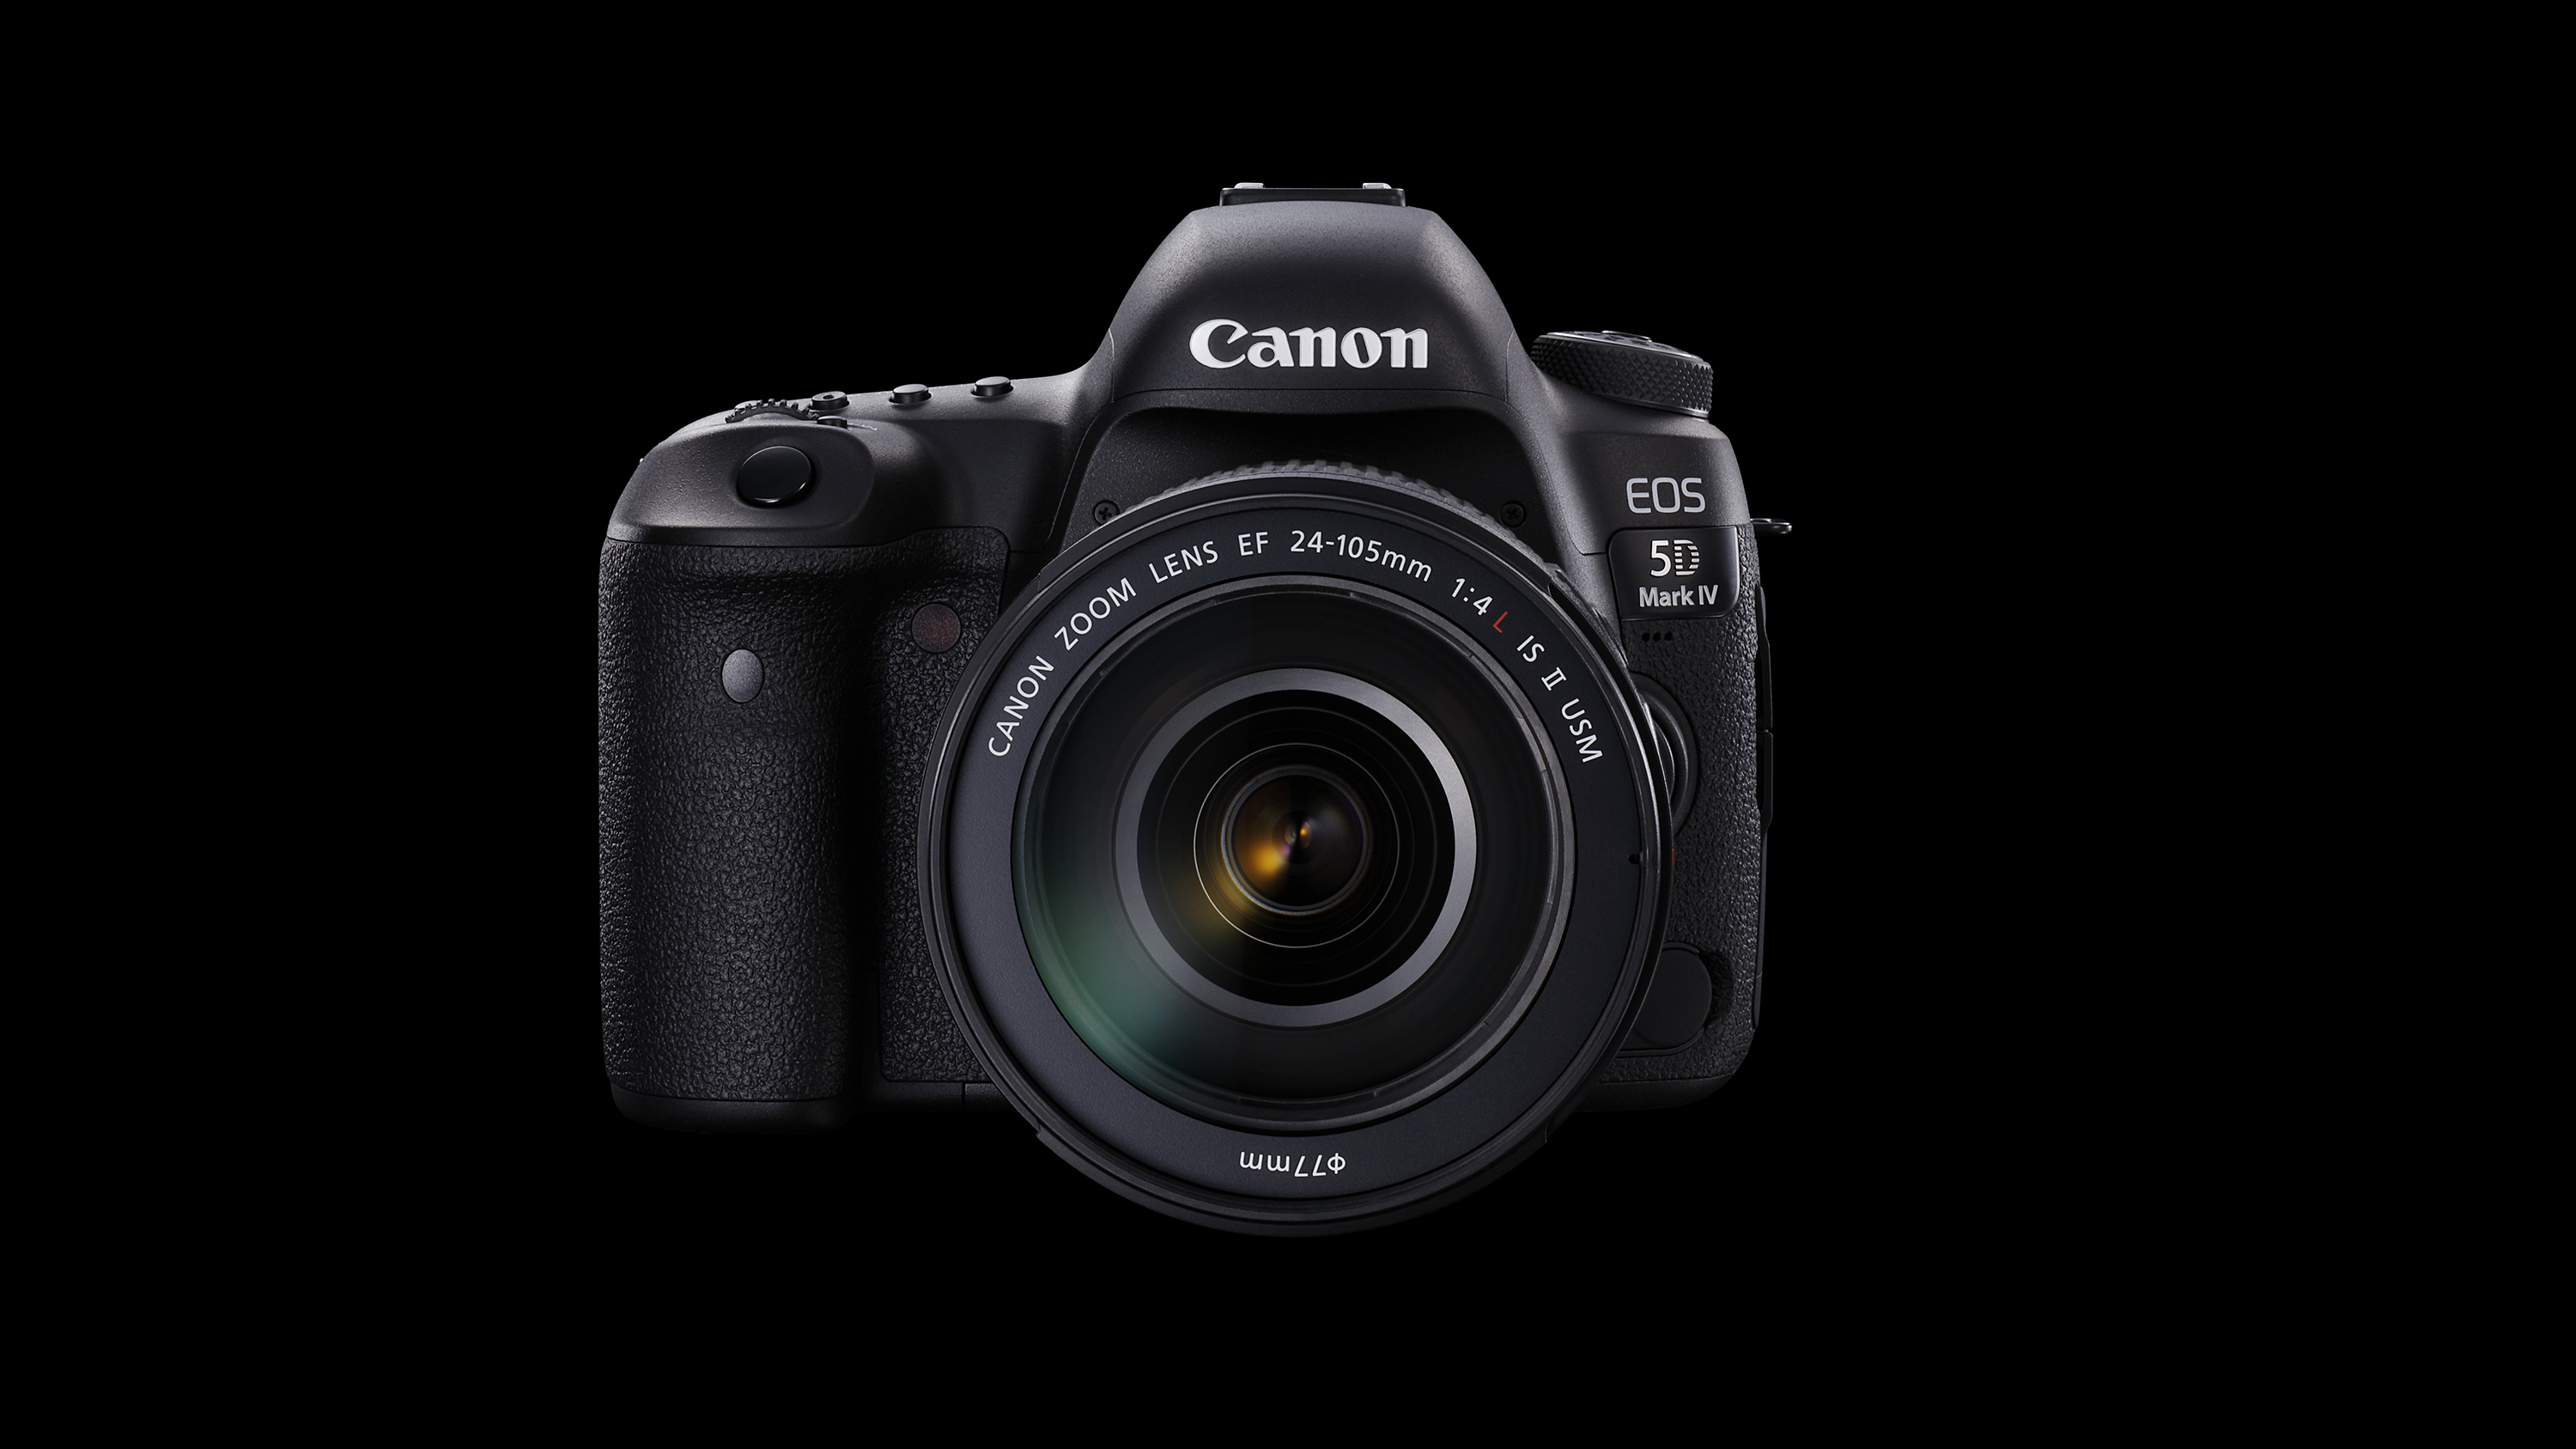 Camera Full Frame Dslr Camera List the 10 best full frame dslrs in 2016 canons 5d series of cameras has a rich heritage original eos bought photography to masses mark ii unleashed hd video